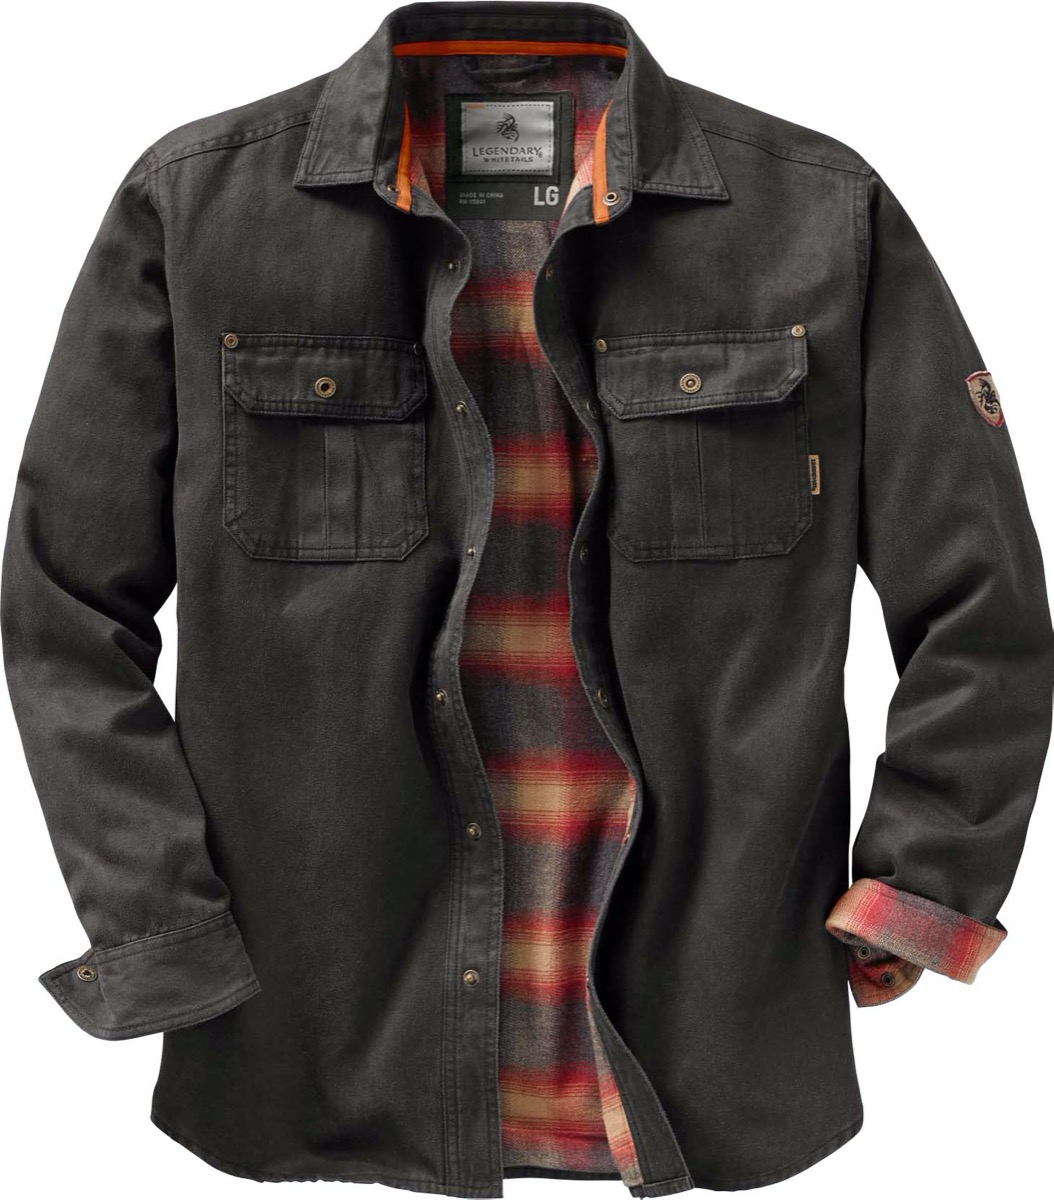 Flannel lined jacket shirt